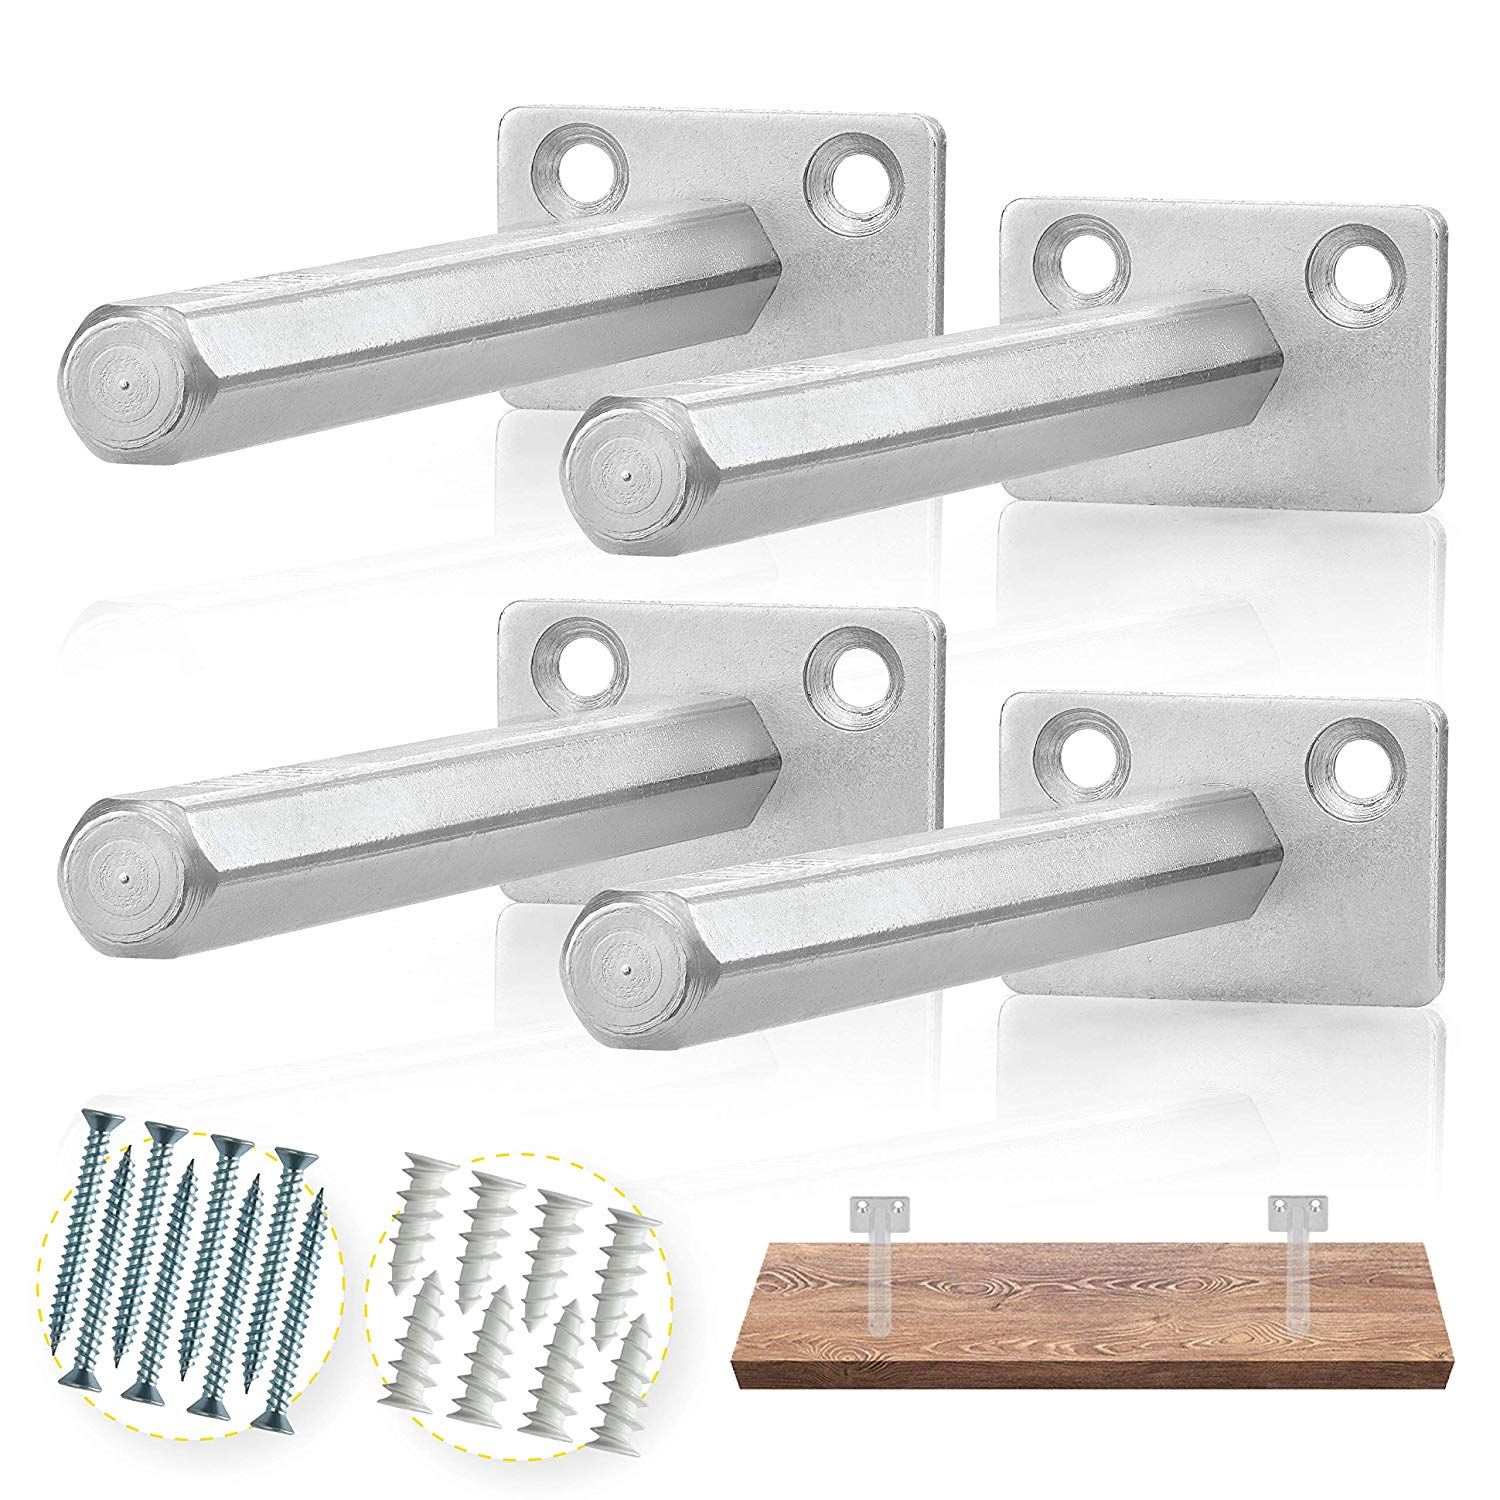 batoda floating shelf bracket pcs galvanized steel xuzl large brackets blind supports hidden for wood shelves concealed support toy canadian tire unfinished corner oak adjustable